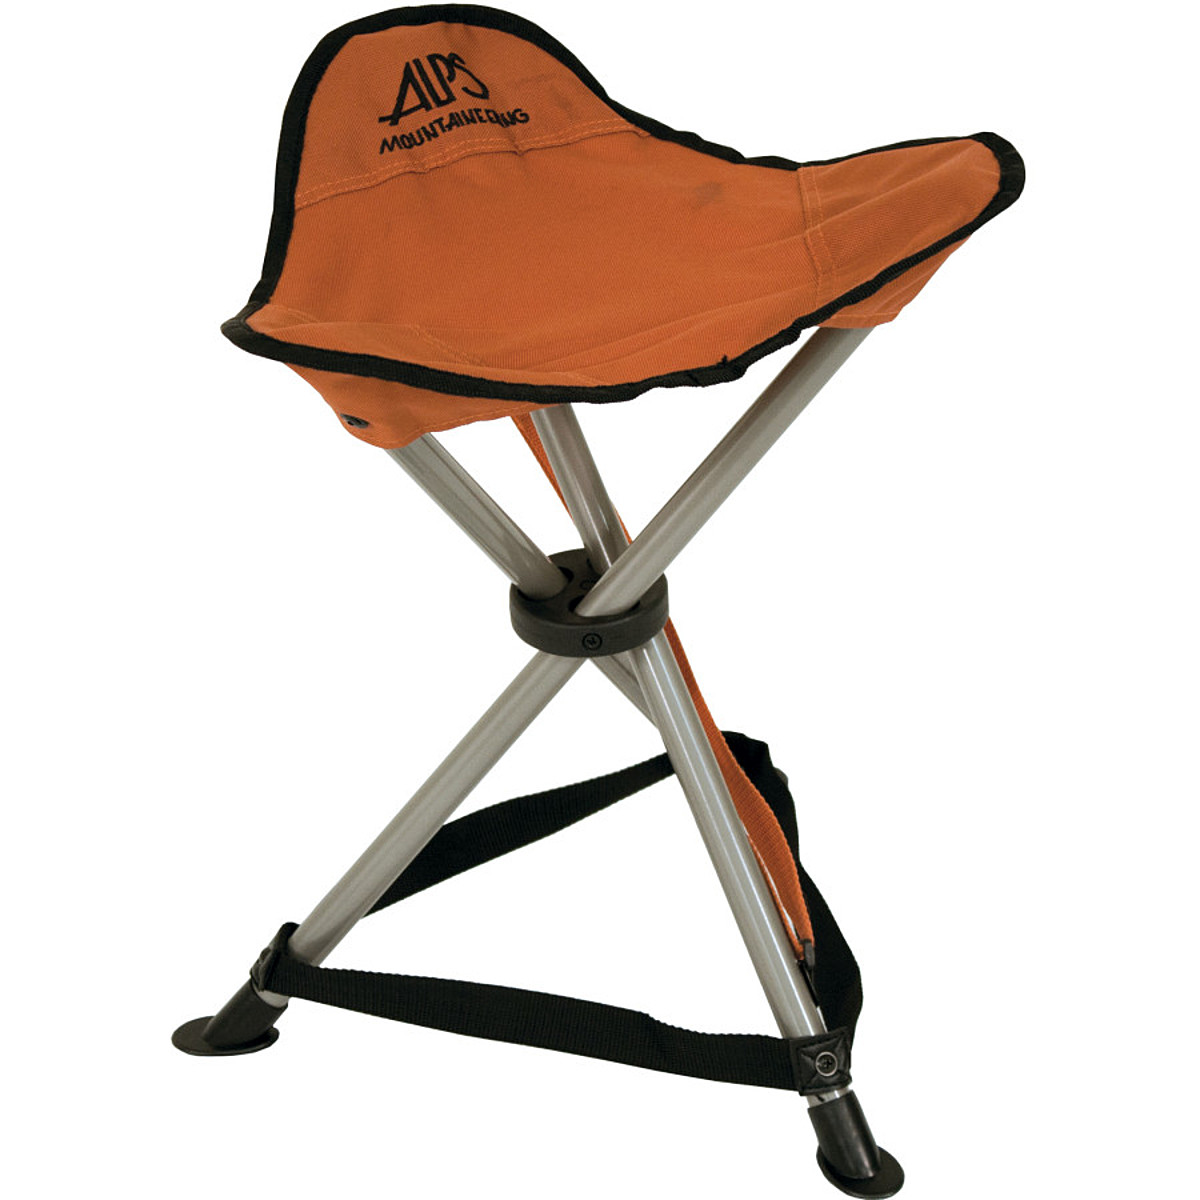 alite mantis chair outdoor porch chairs alps mountaineering tri-leg stool reviews - trailspace.com